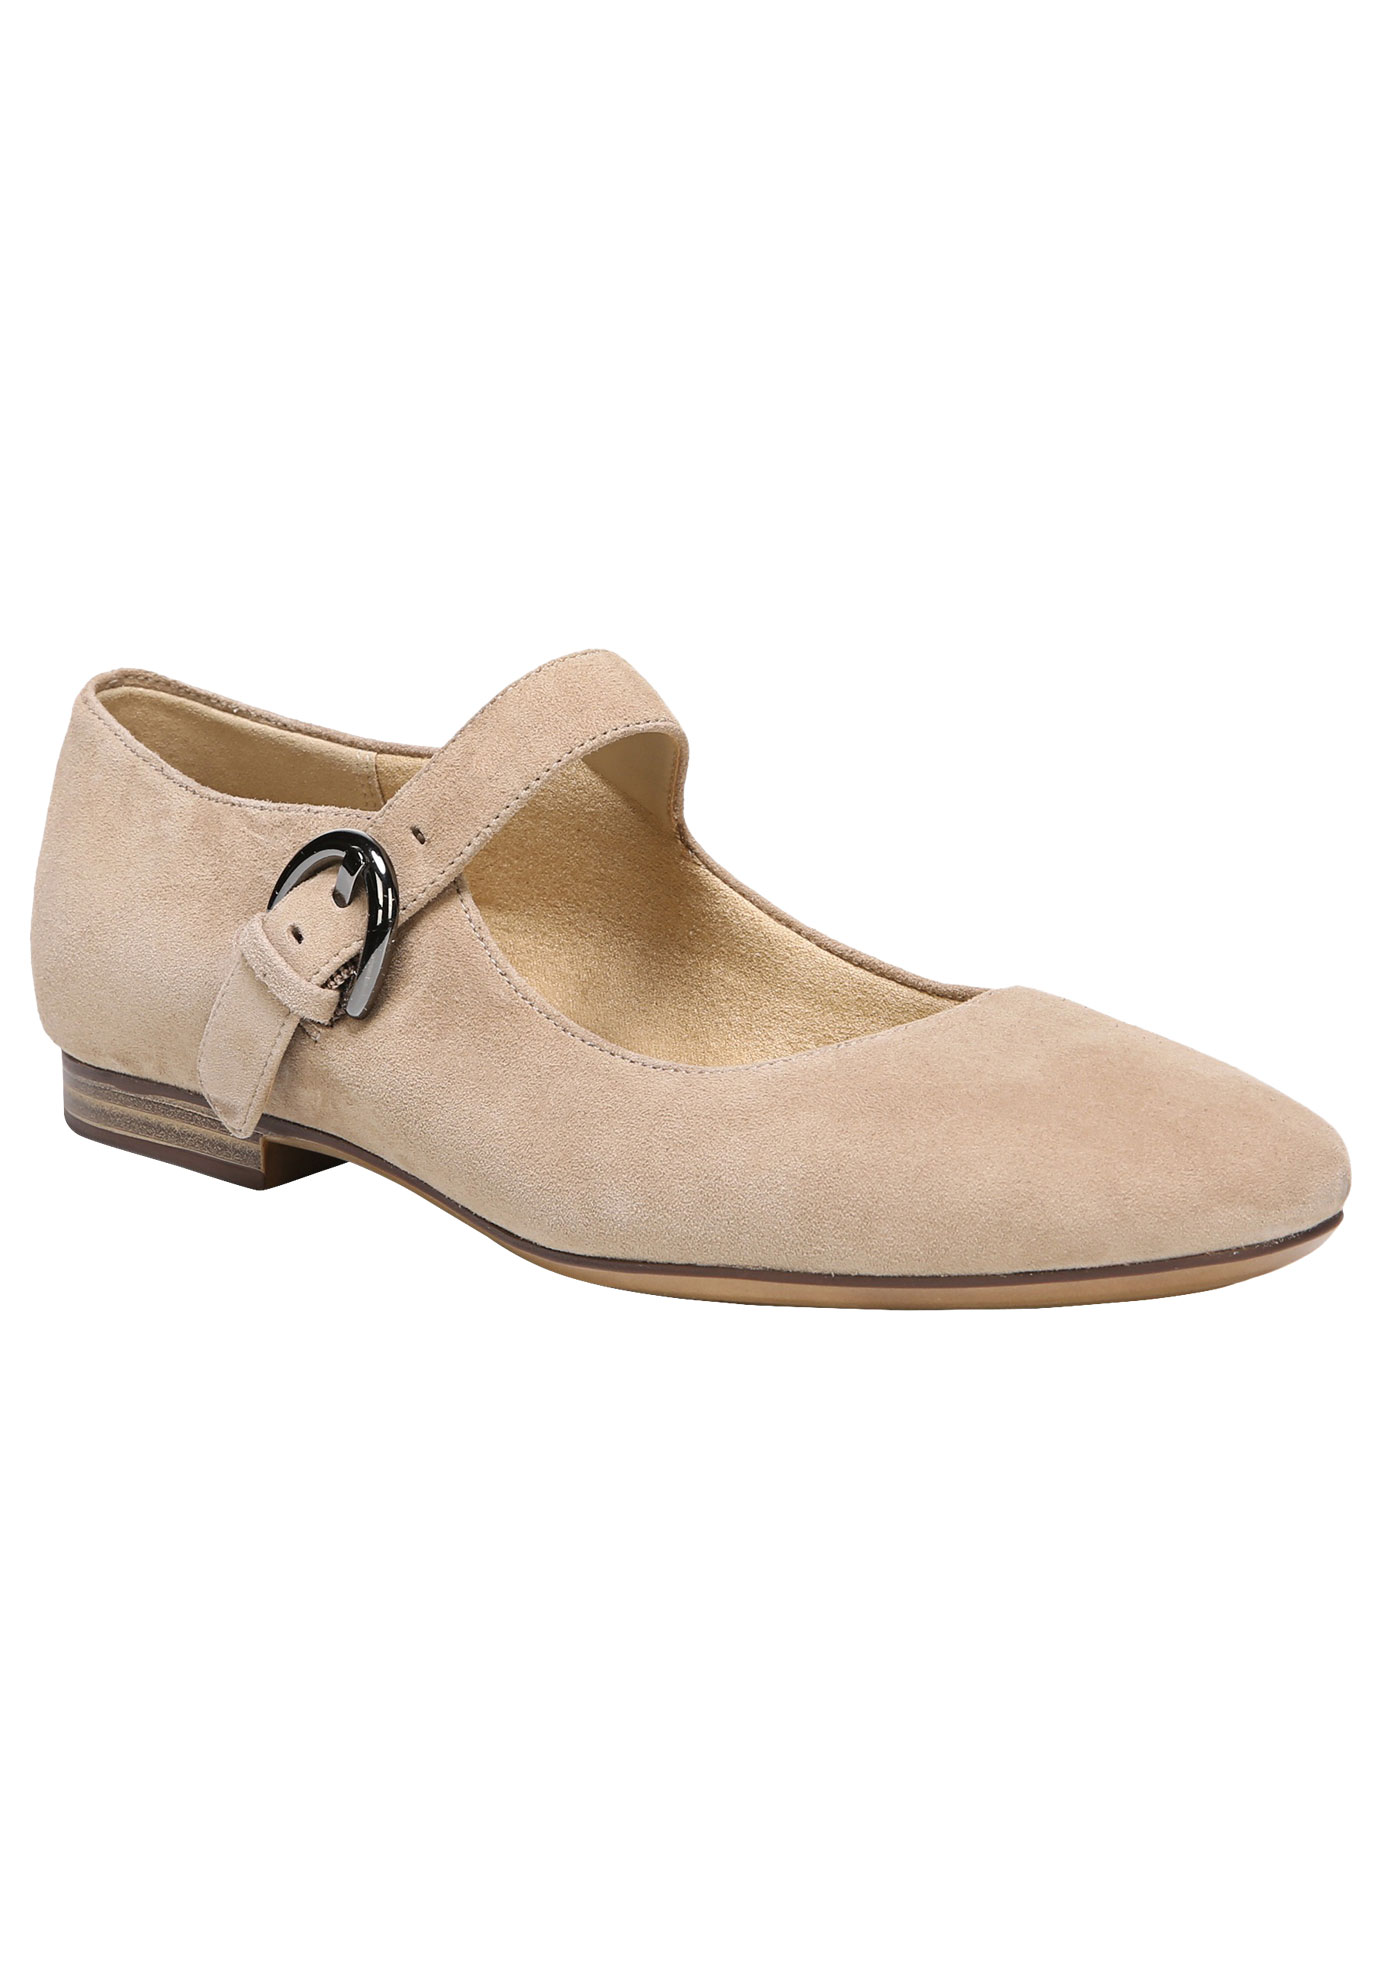 Erica Flats by Naturalizer®, OATMEAL, hi-res